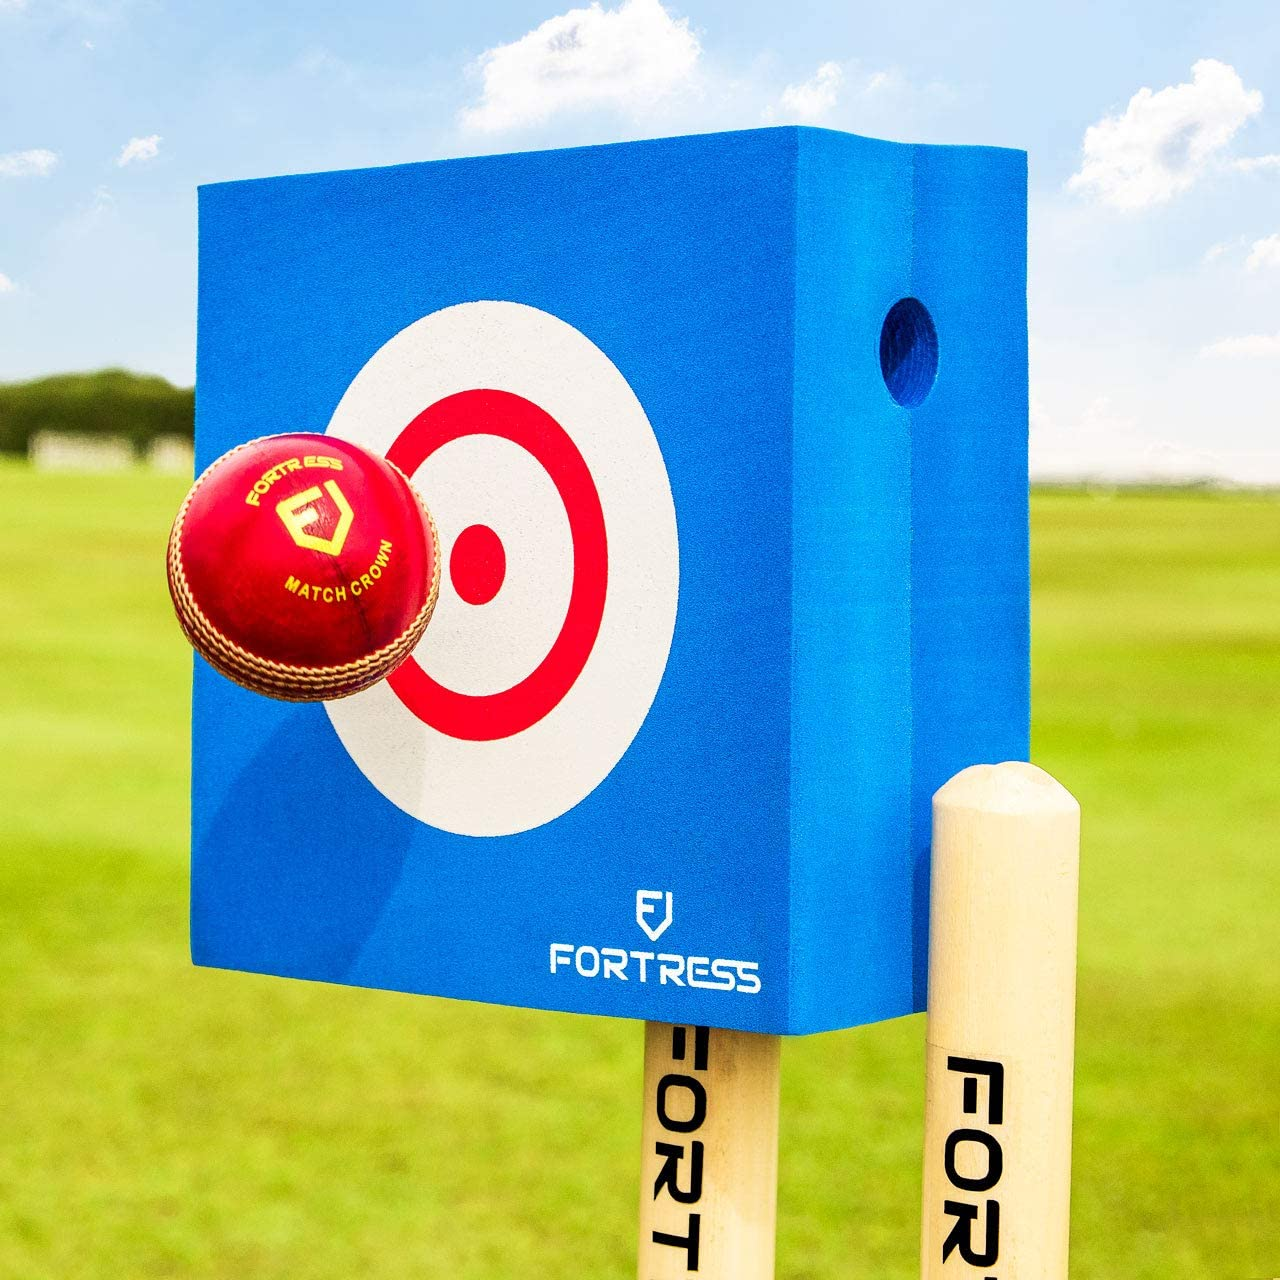 Fortress Foam Bowling Target Cricket Bowling Accuracy Practice Drills